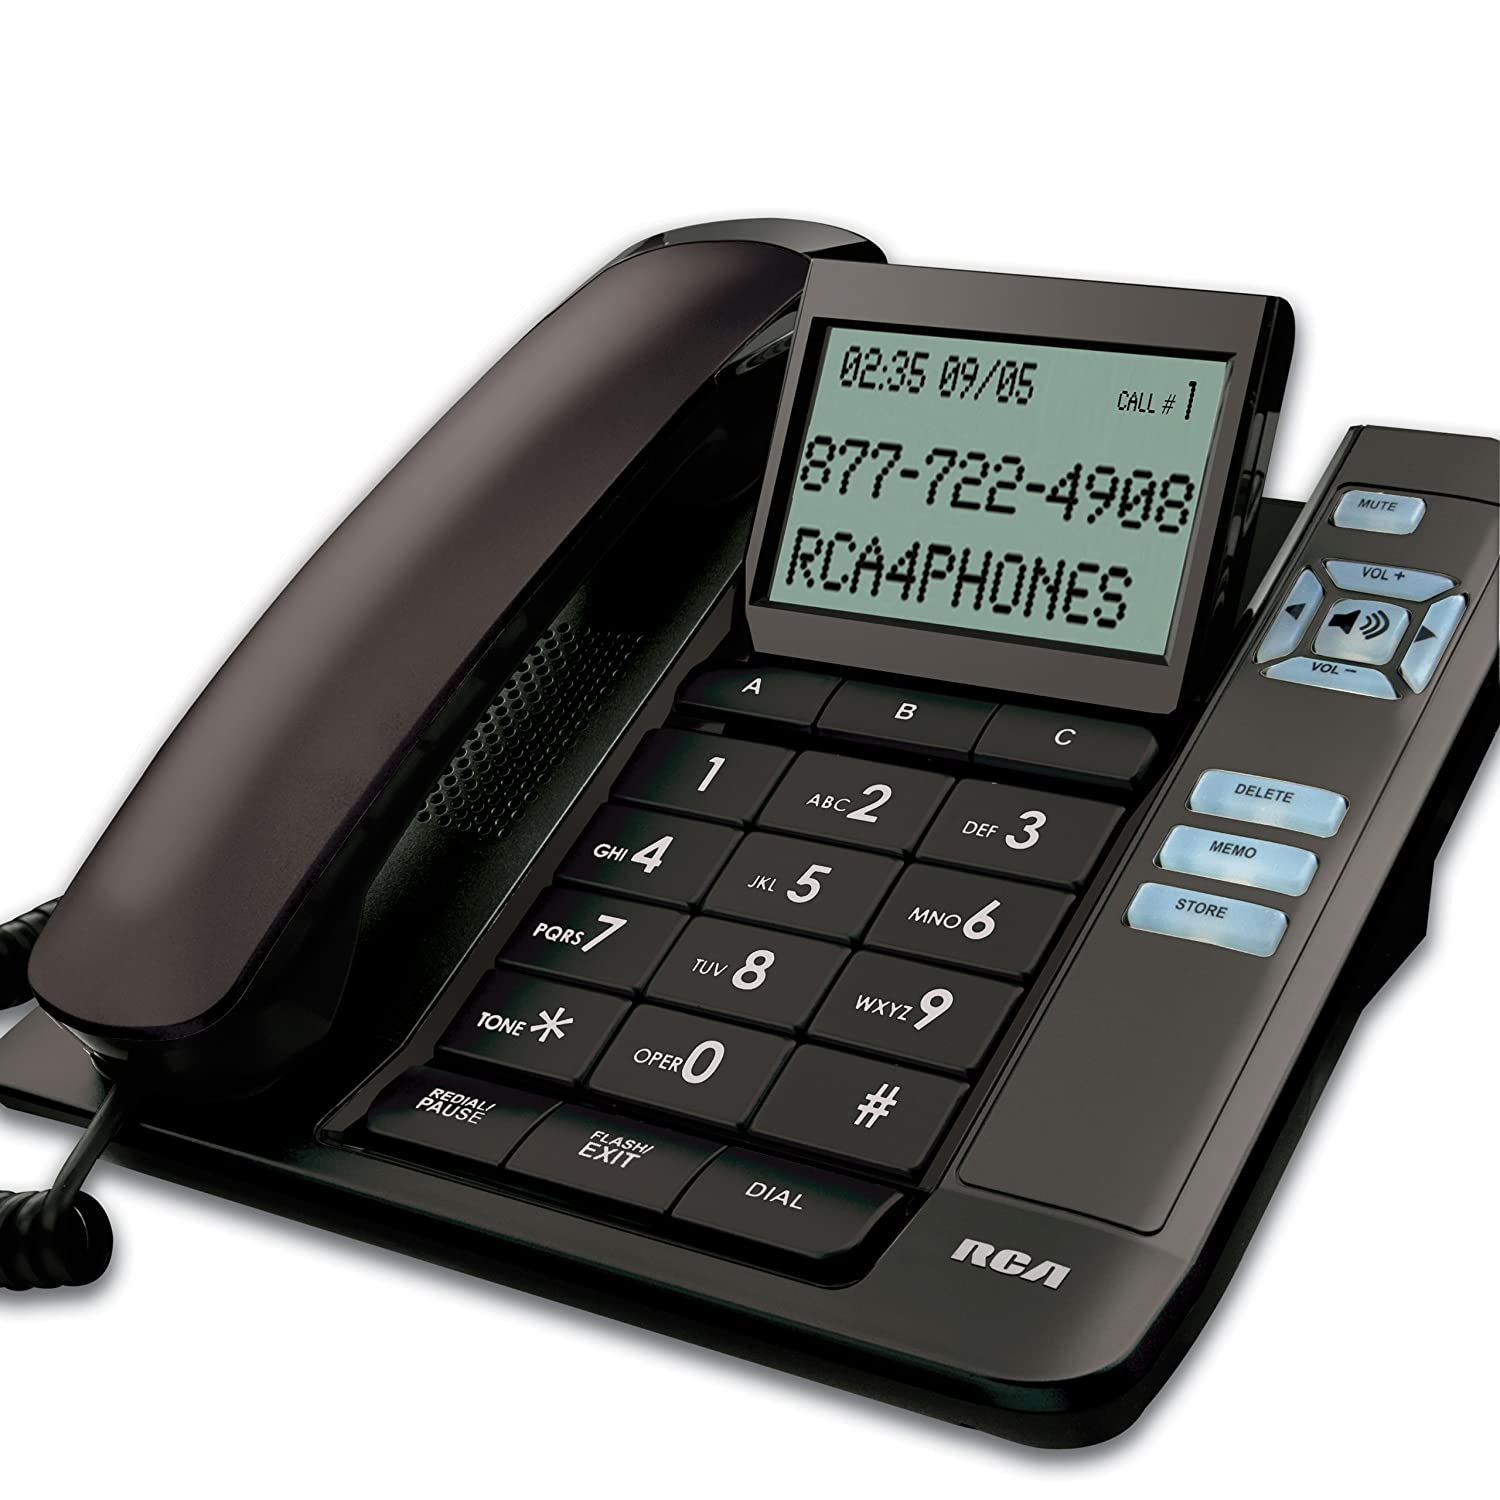 at&t cl4940 corded phone with answering system manual